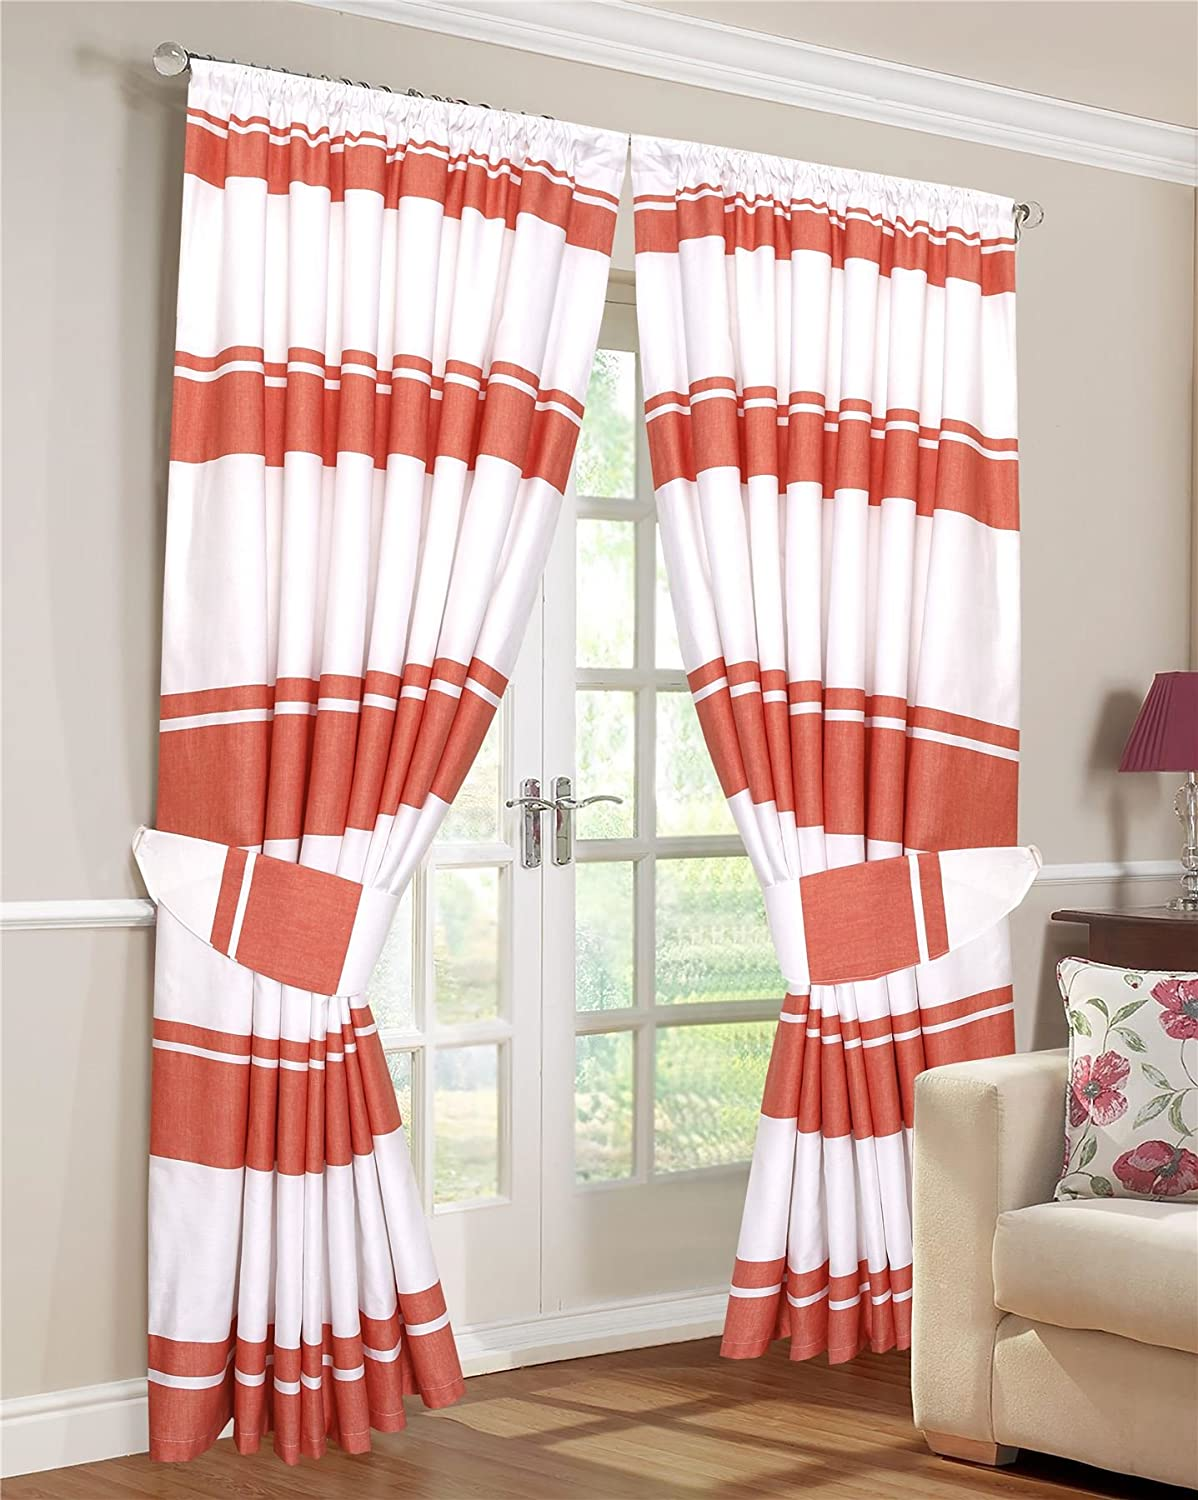 SleepyNights Love2Sleep PAIR OF PENCIL PLEAT LINED THERMAL STRIPED CURTAINS WITH TIEBACKS WHITE AND ORANGE 46